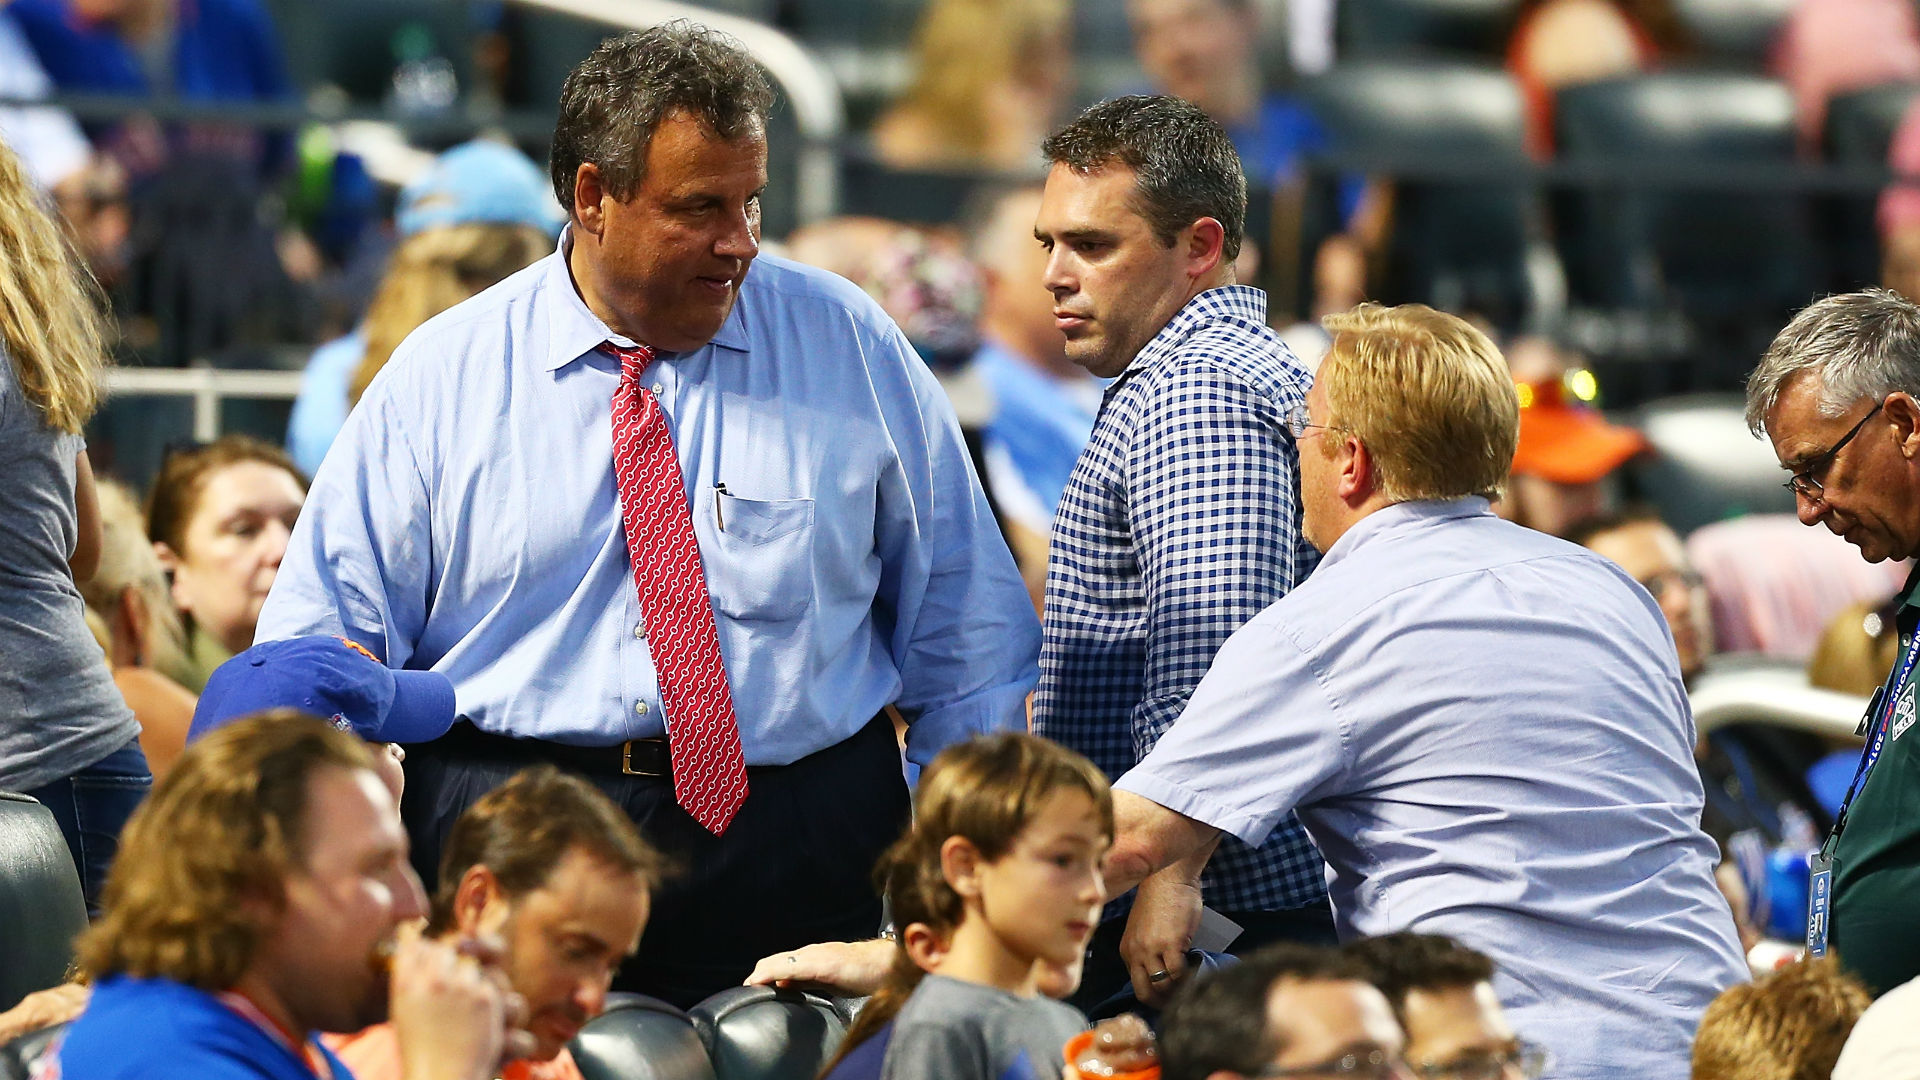 Chris Christie Goes After Cubs Fan While Holding Nachos